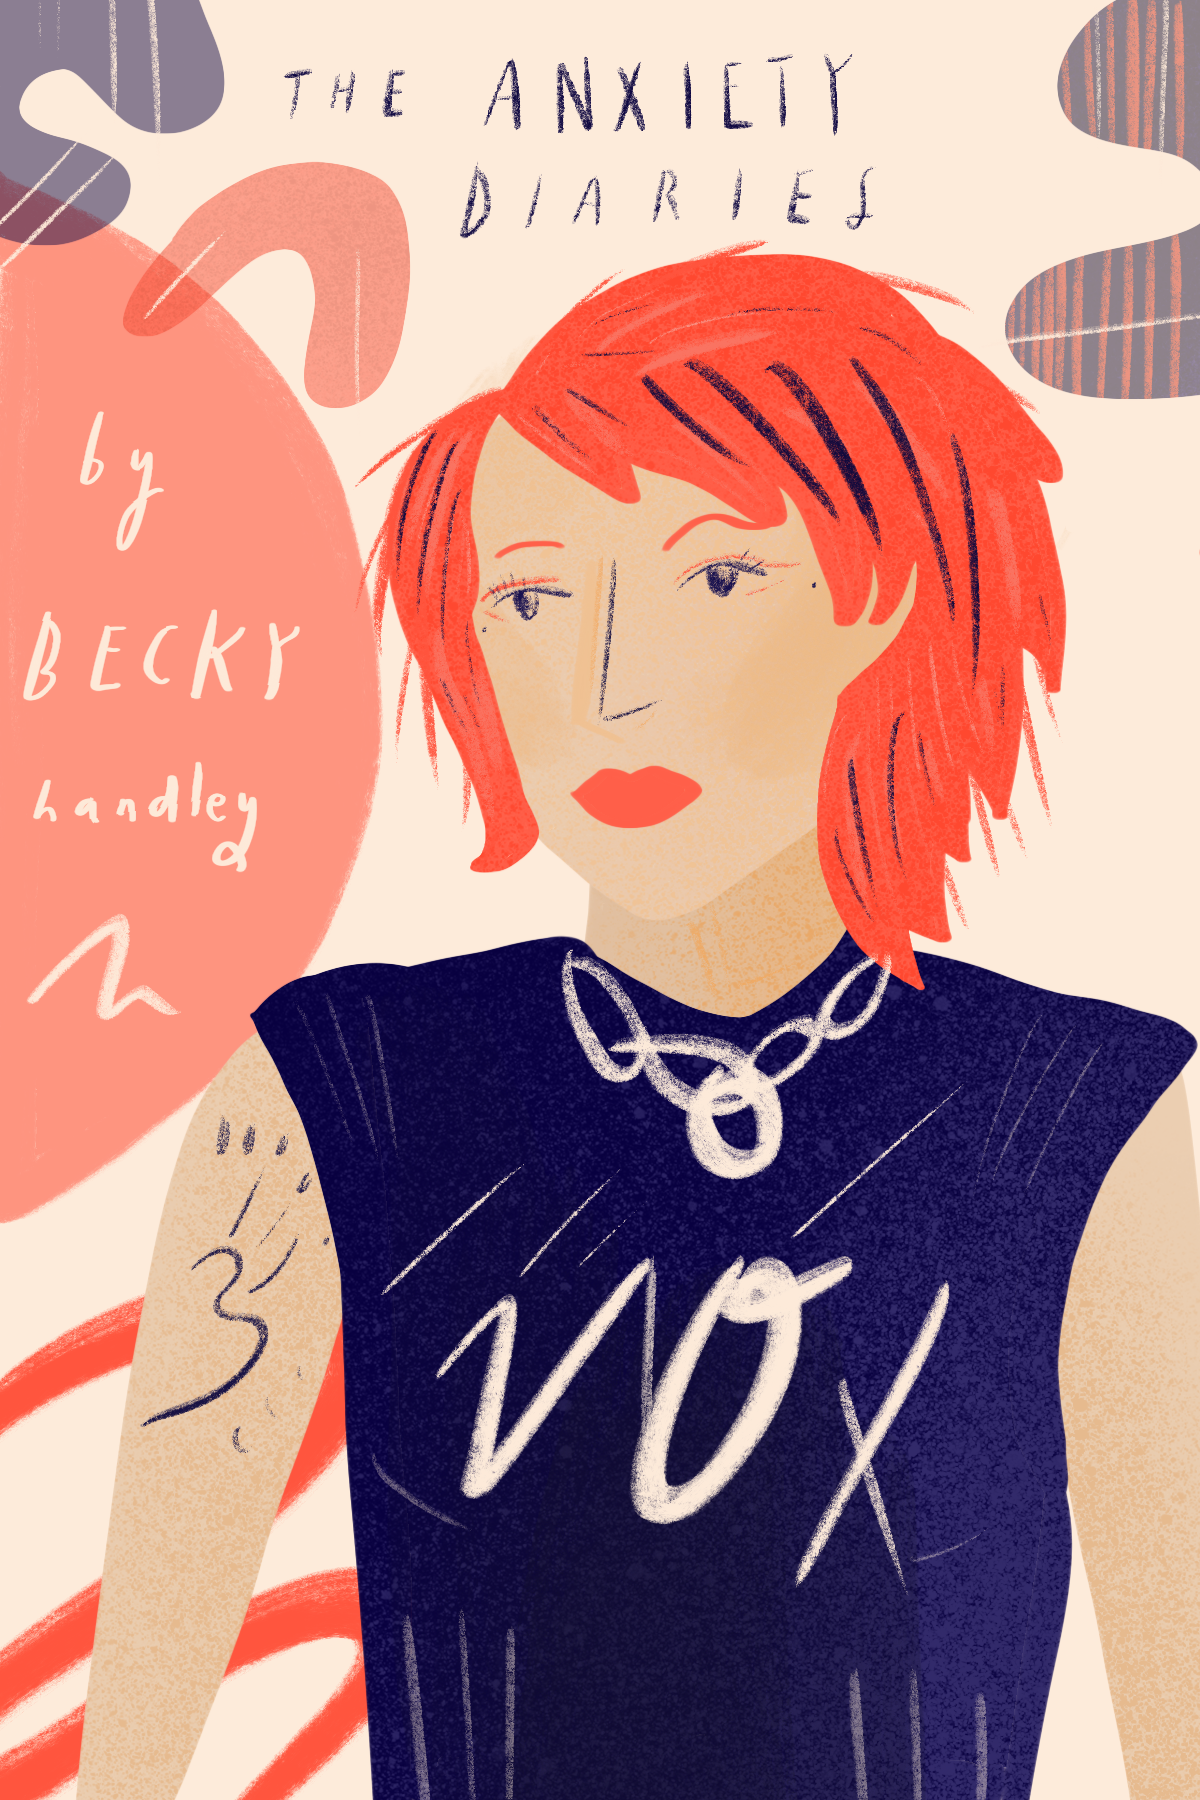 The Anxiety Diaries, Written By Becky Handley. Illustration By Alice Rose Bolton